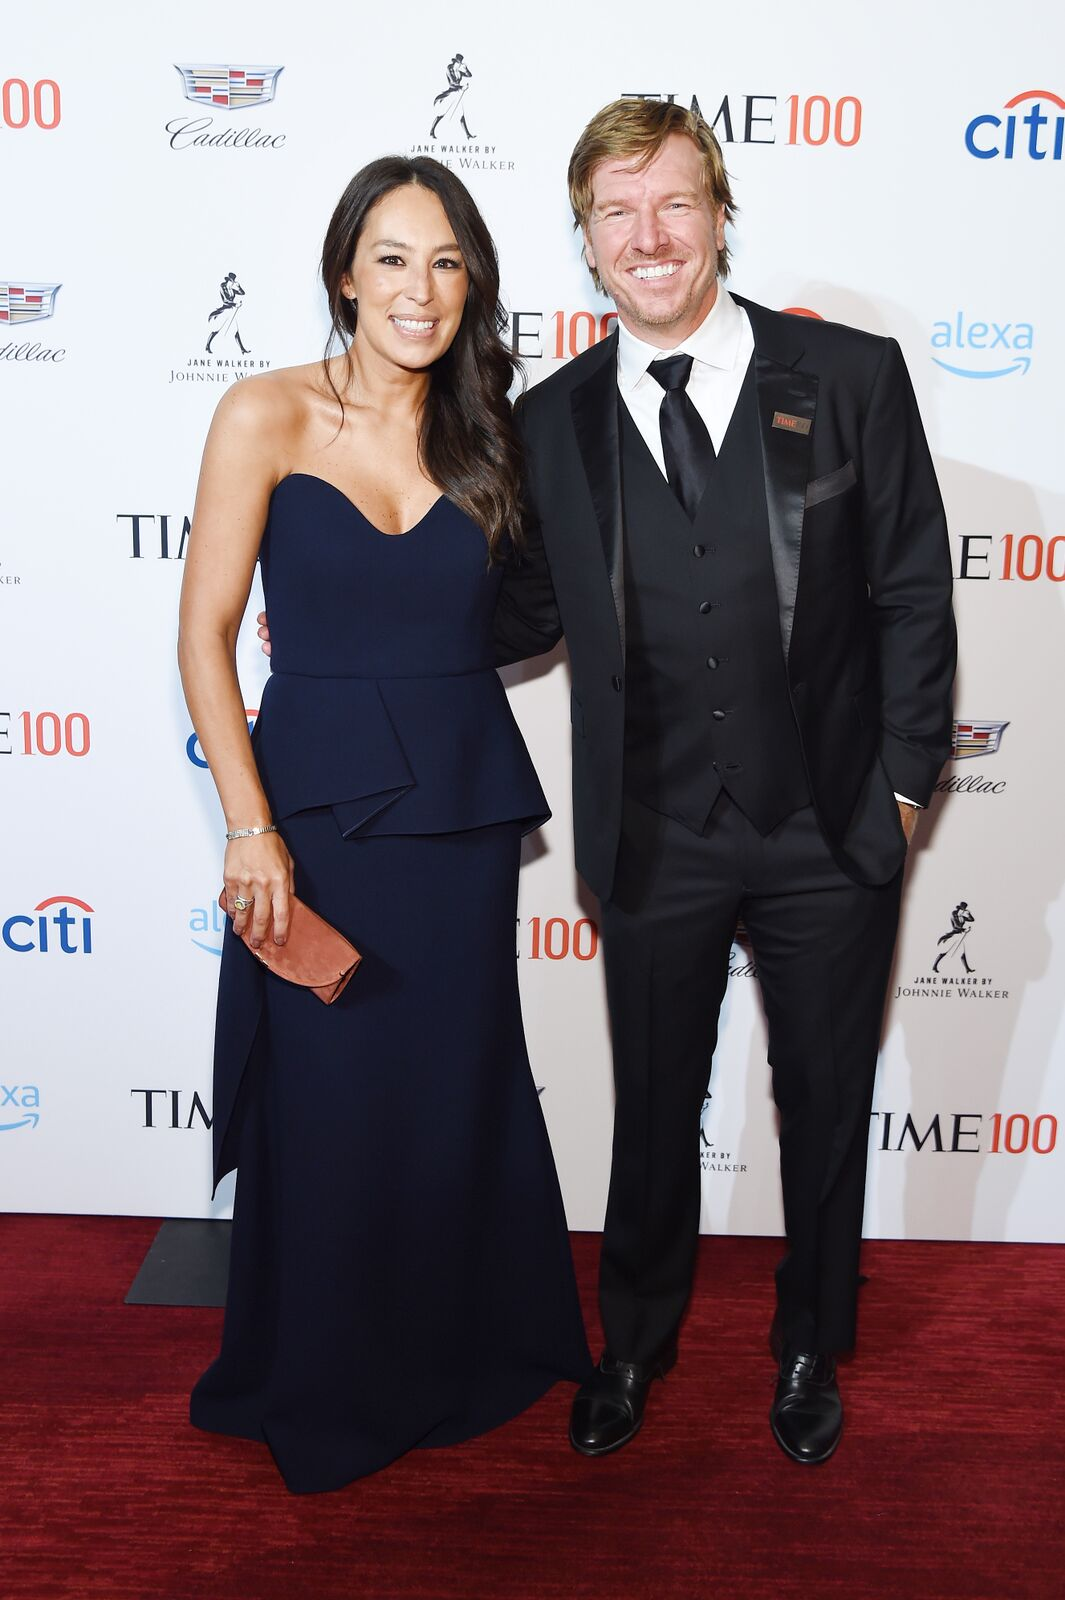 Joanna Gaines and Chip Gaines attend the TIME 100 Gala 2019 Cocktails at Jazz at Lincoln Center on April 23, 2019 in New York City | Photo: Getty Images